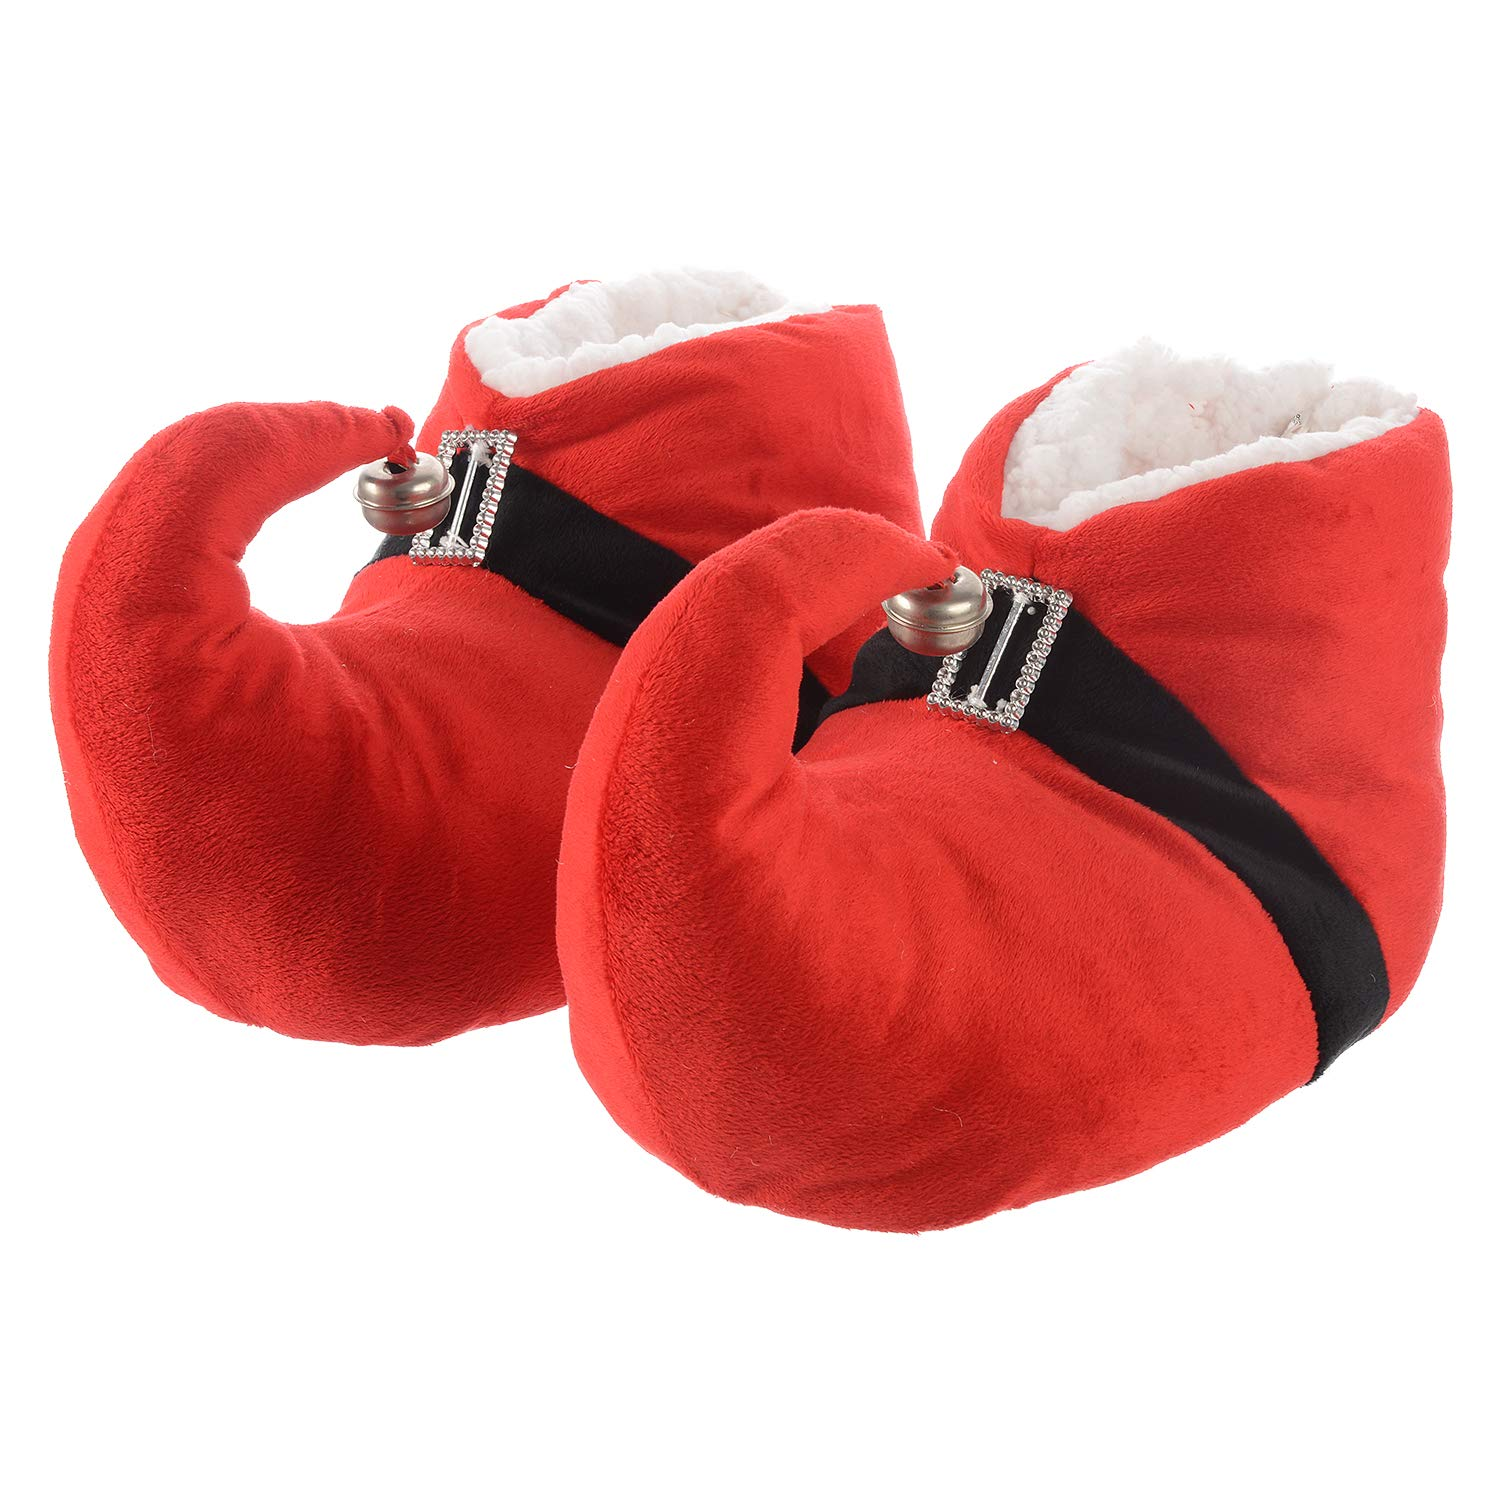 KushyShoo Christmas Slippers Fluffy Cozy Memory Foam Shoes, Warm Anti-Slip Cotton Animal House Slippers Winter Adults ASC1